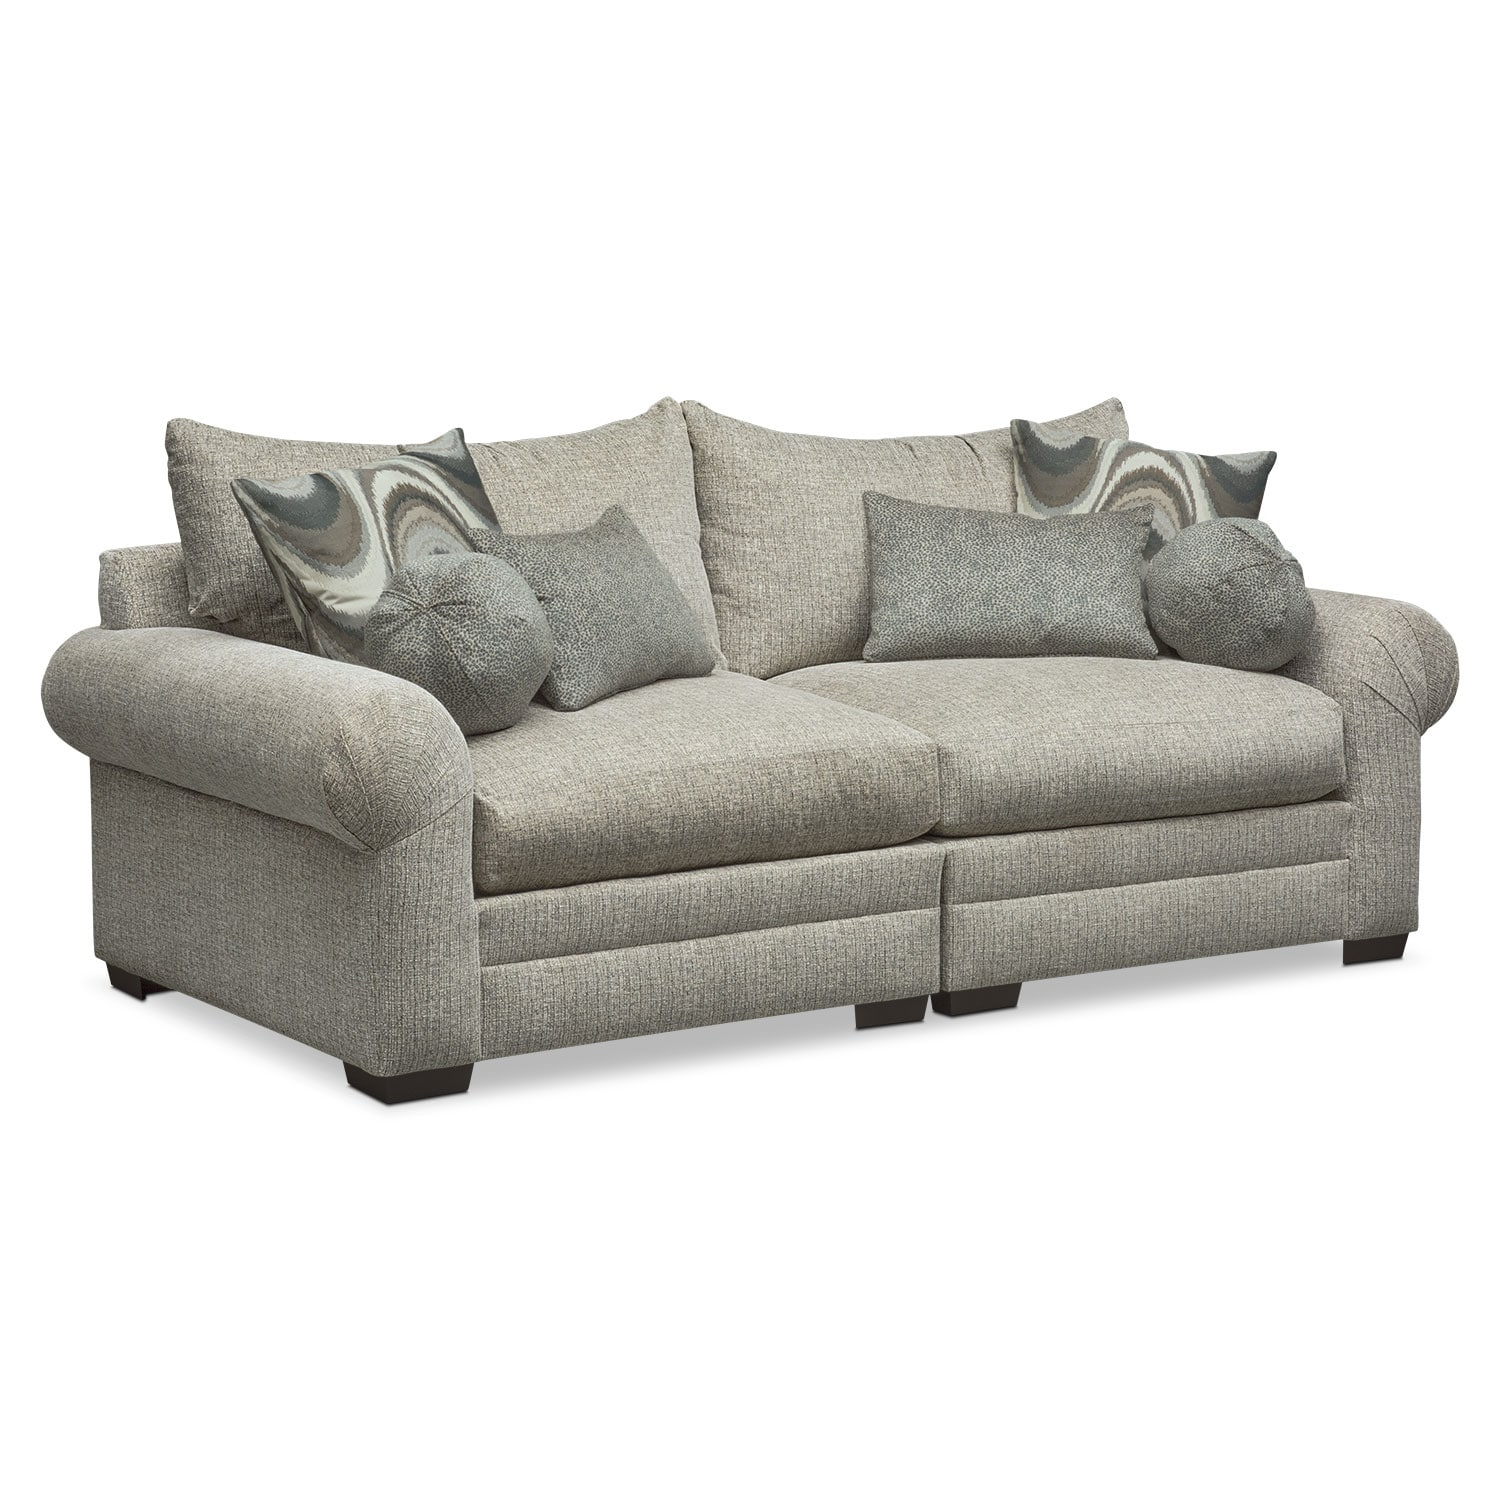 Living Room Furniture - Wilshire Sofa - Gray